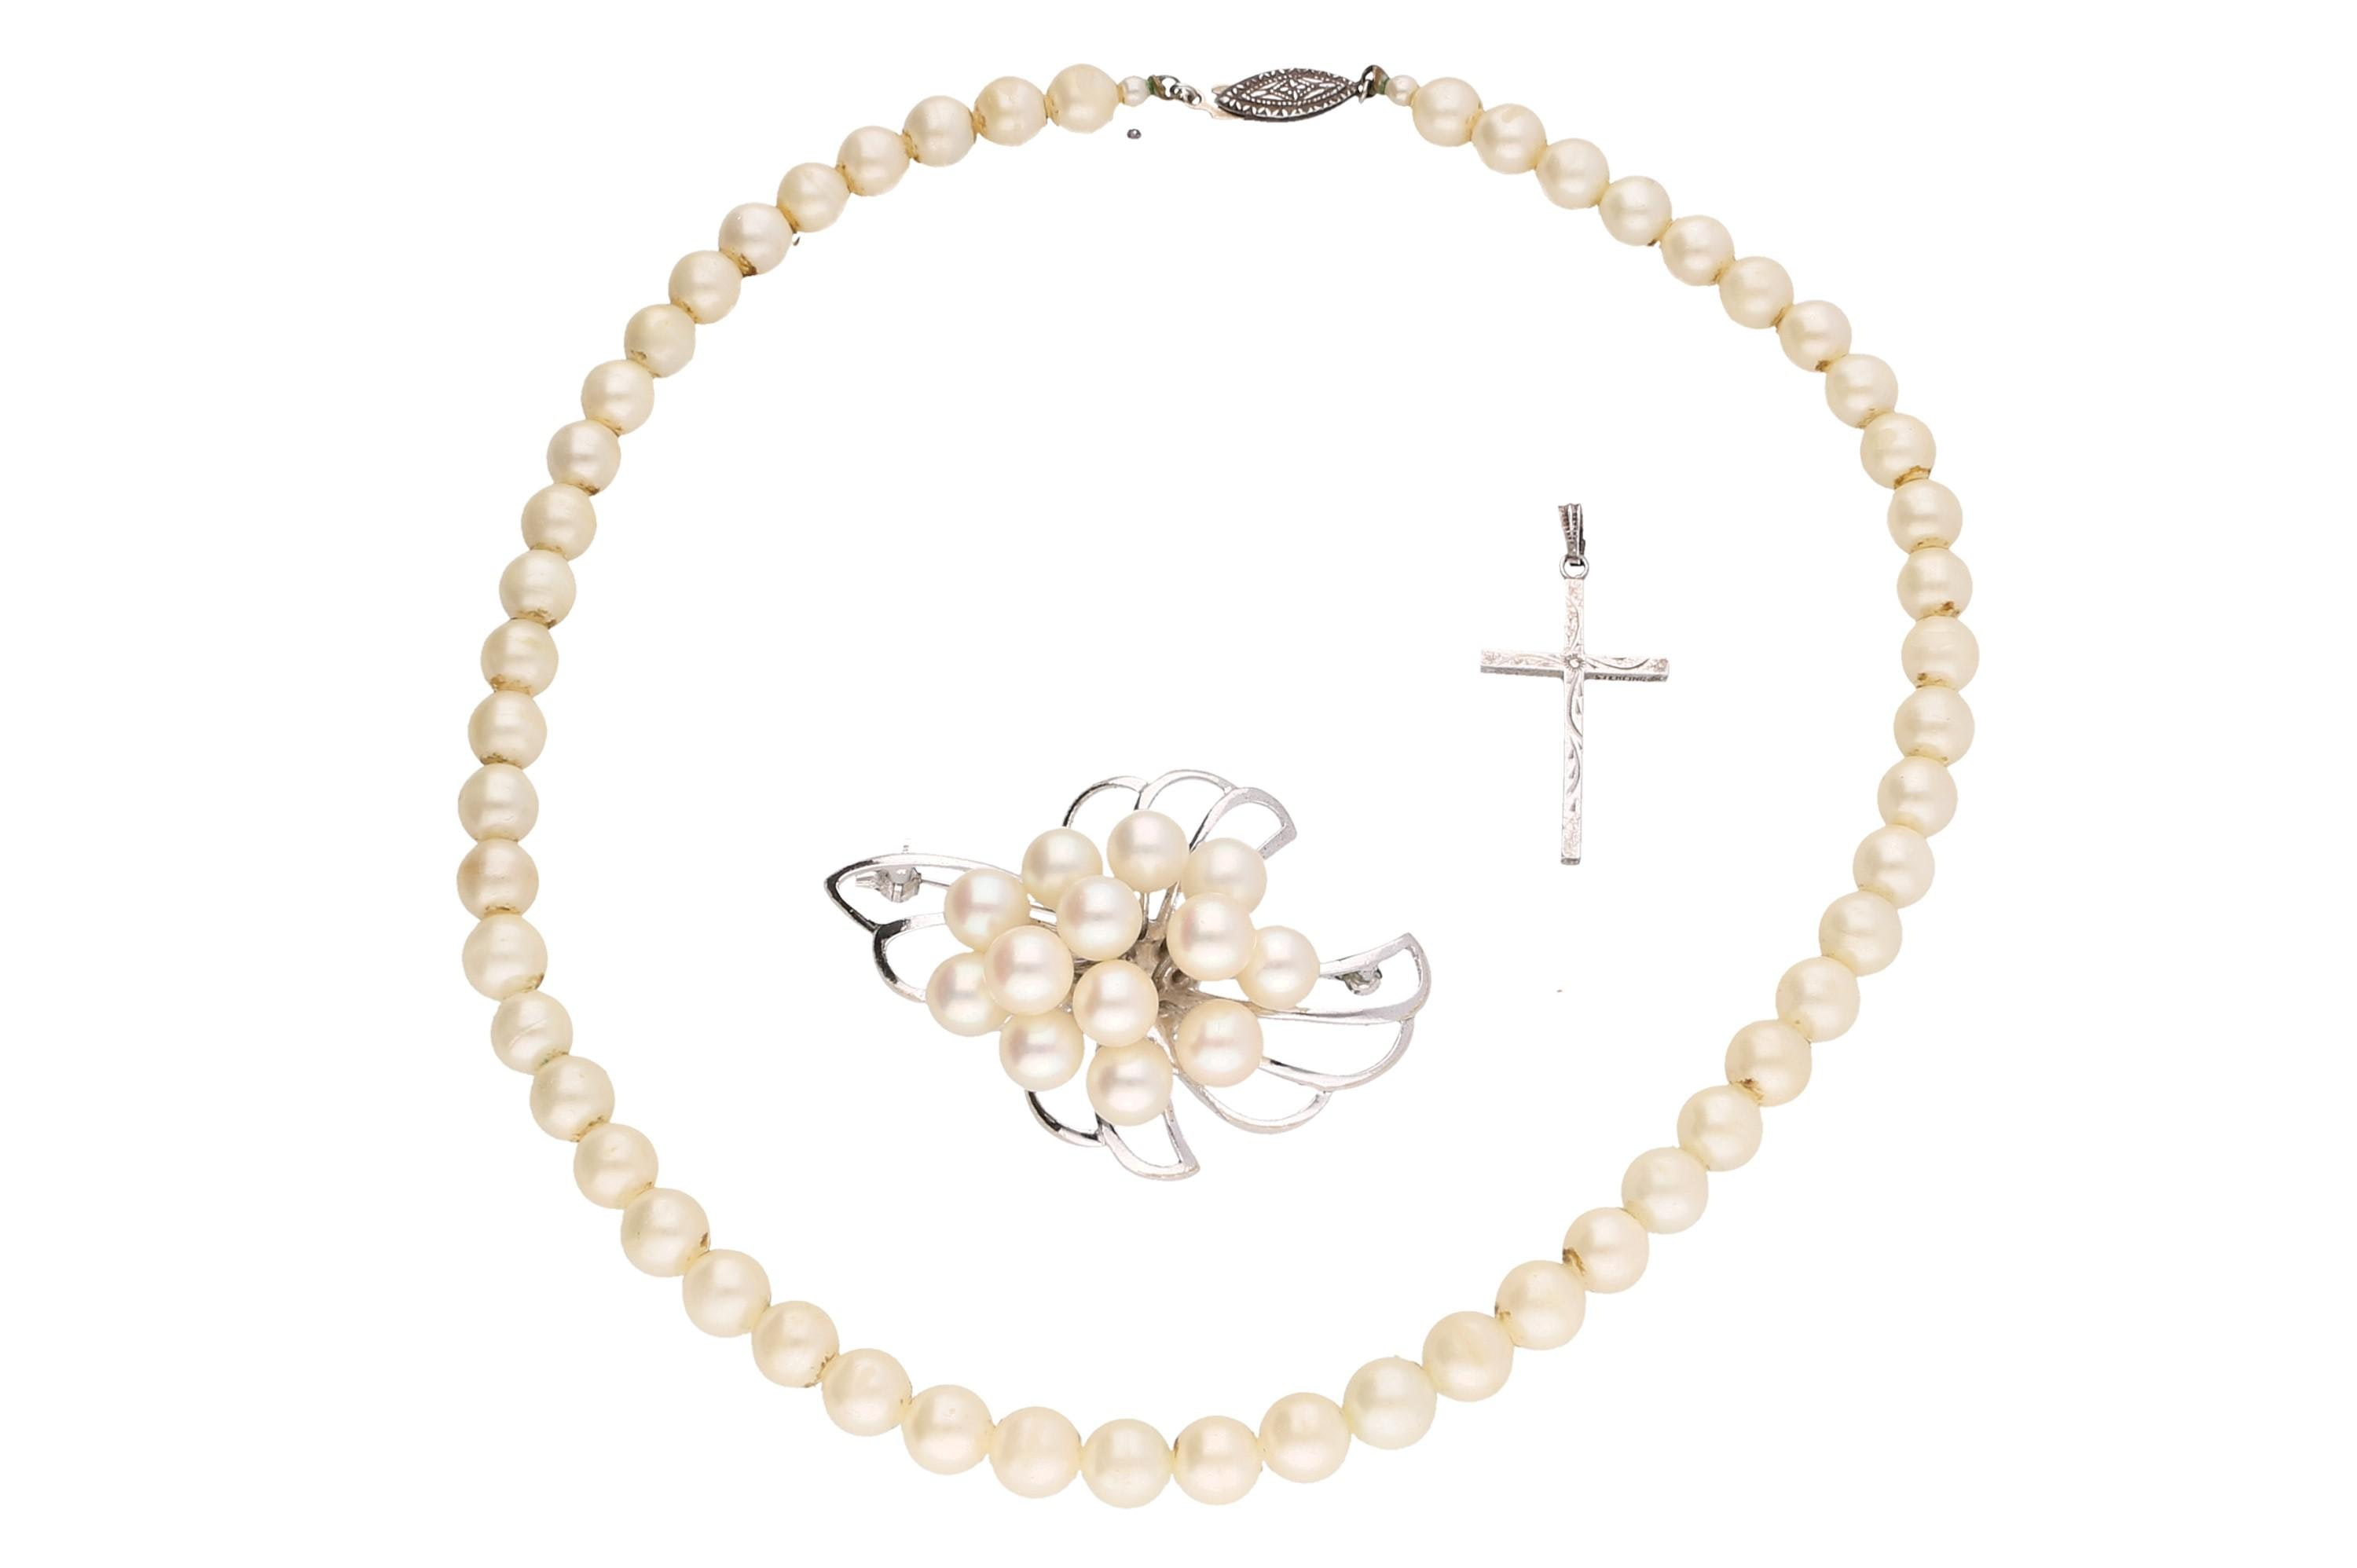 Sterling Silver Cultured and Faux Pearl Jewelry